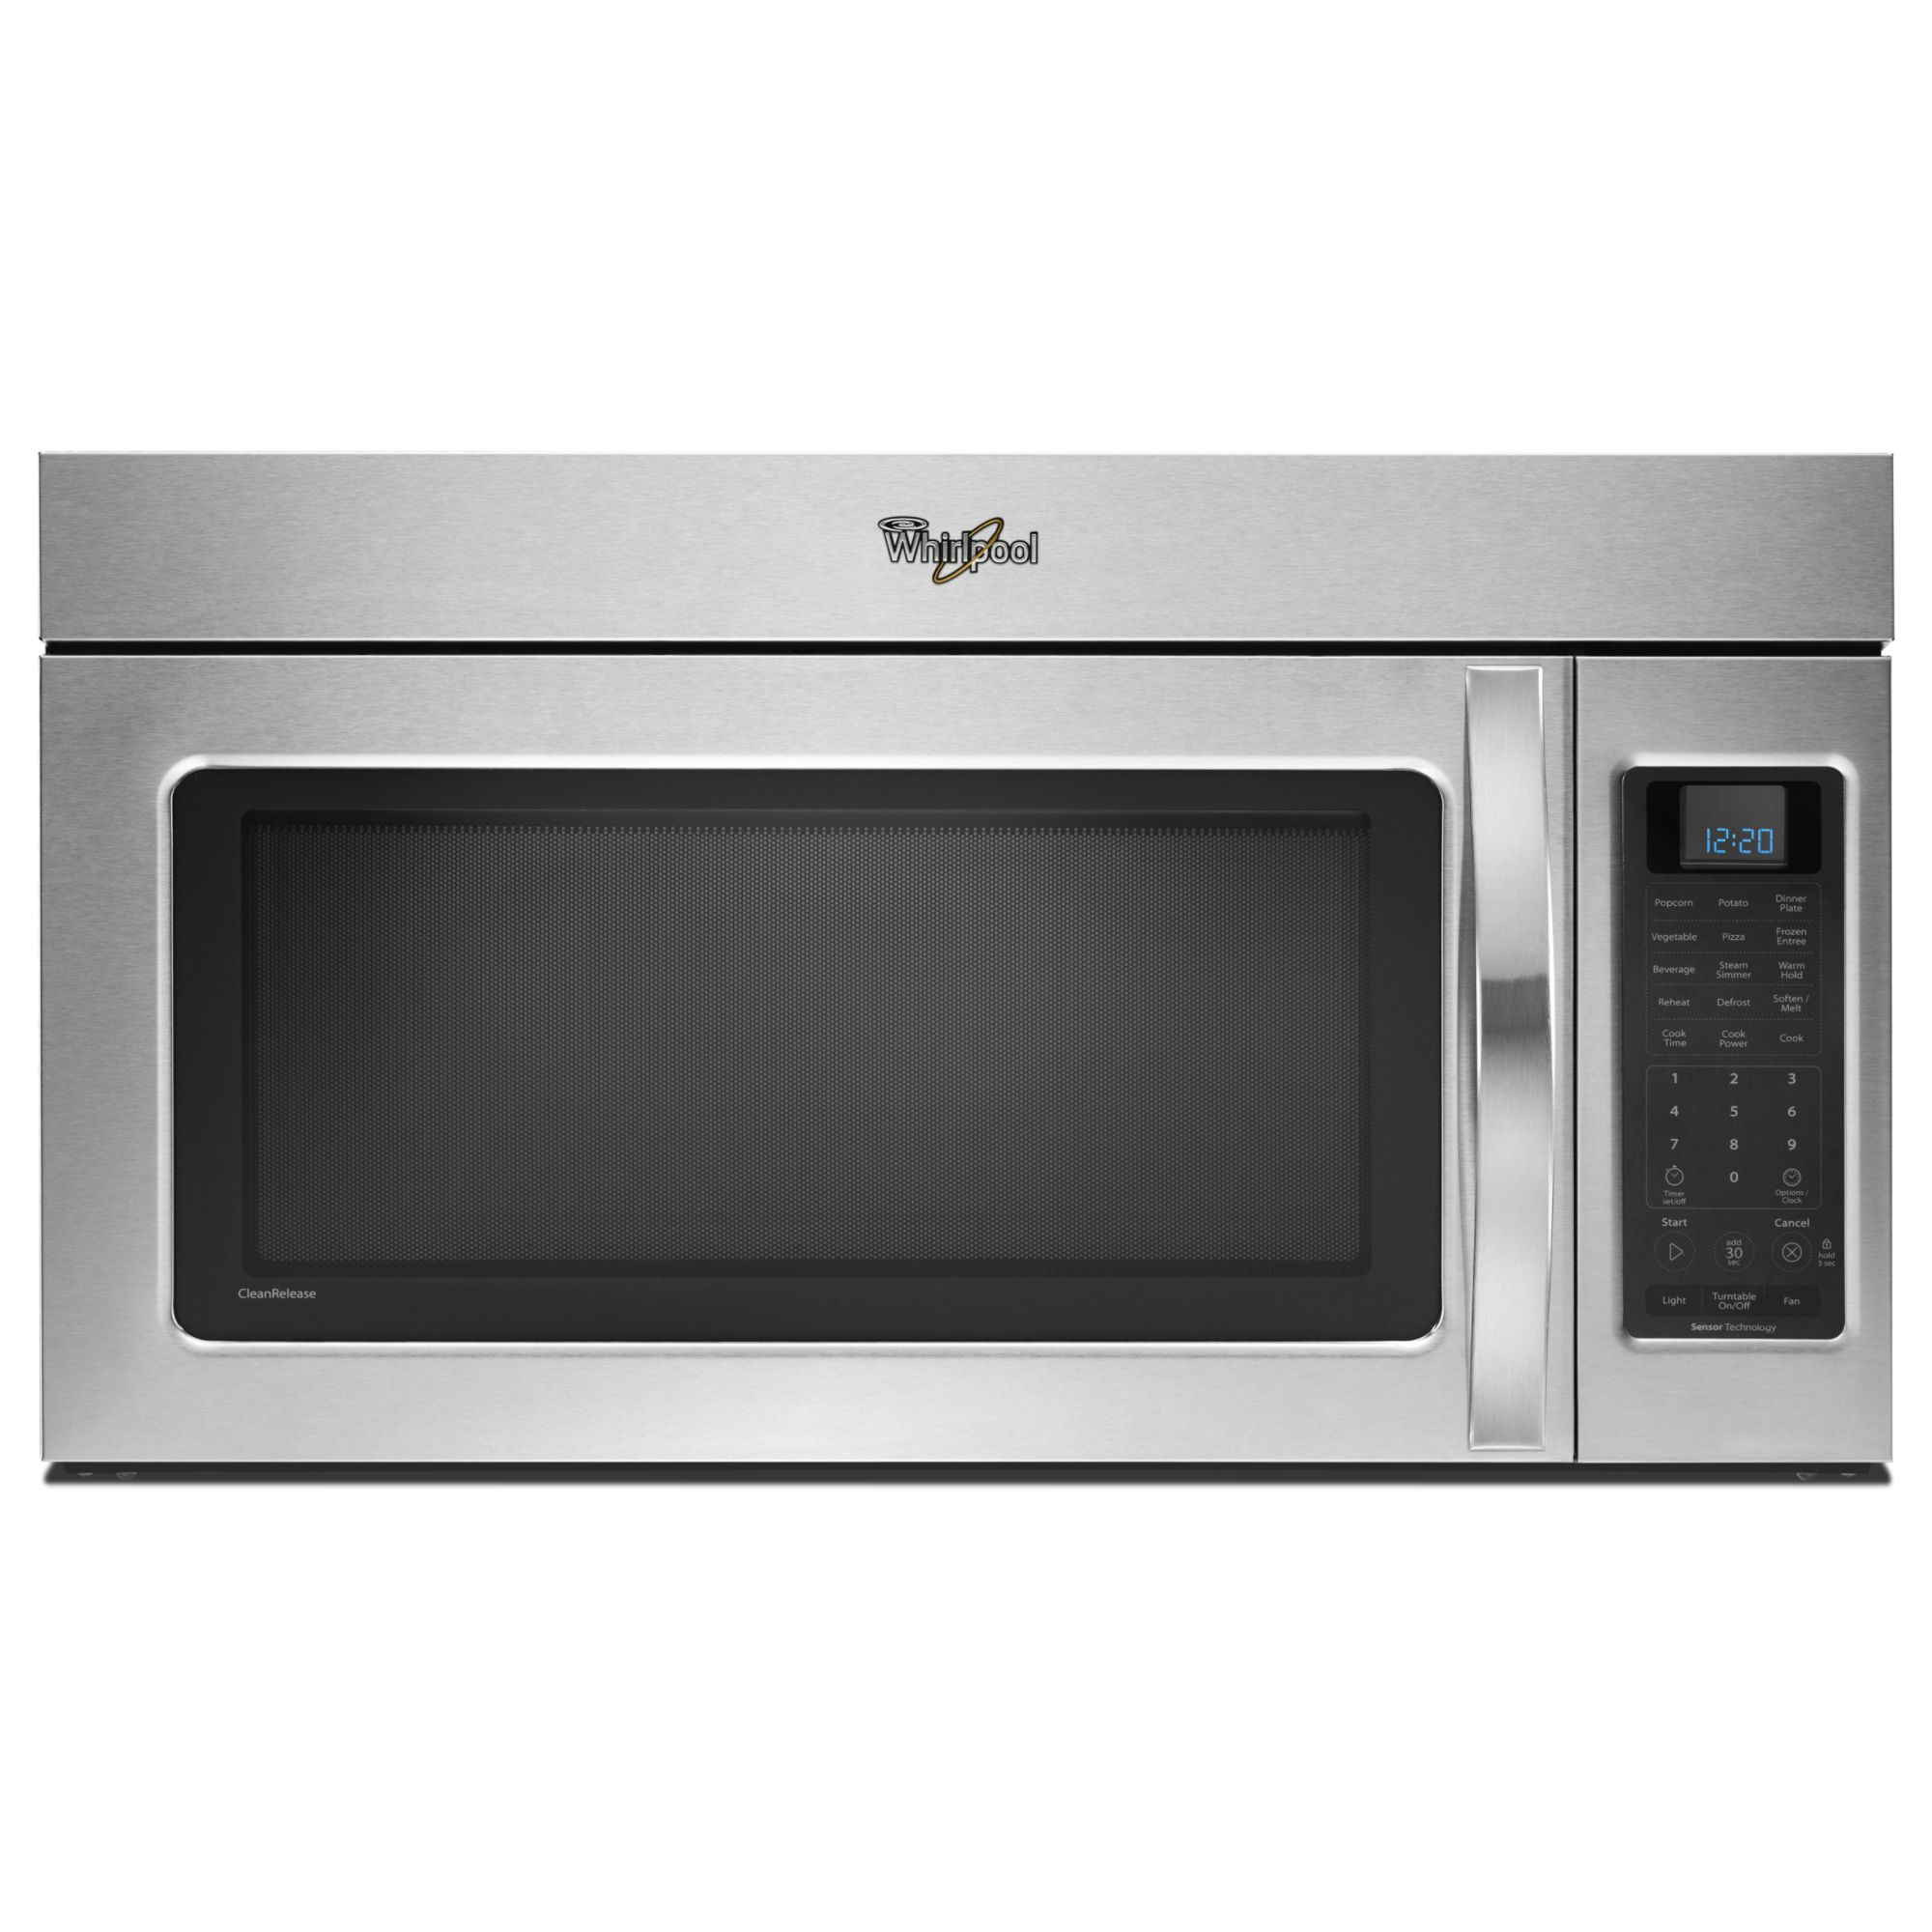 Whirlpool 30 Over the Range Microwave w/ Auto Adapt Fan - Stainless Steel